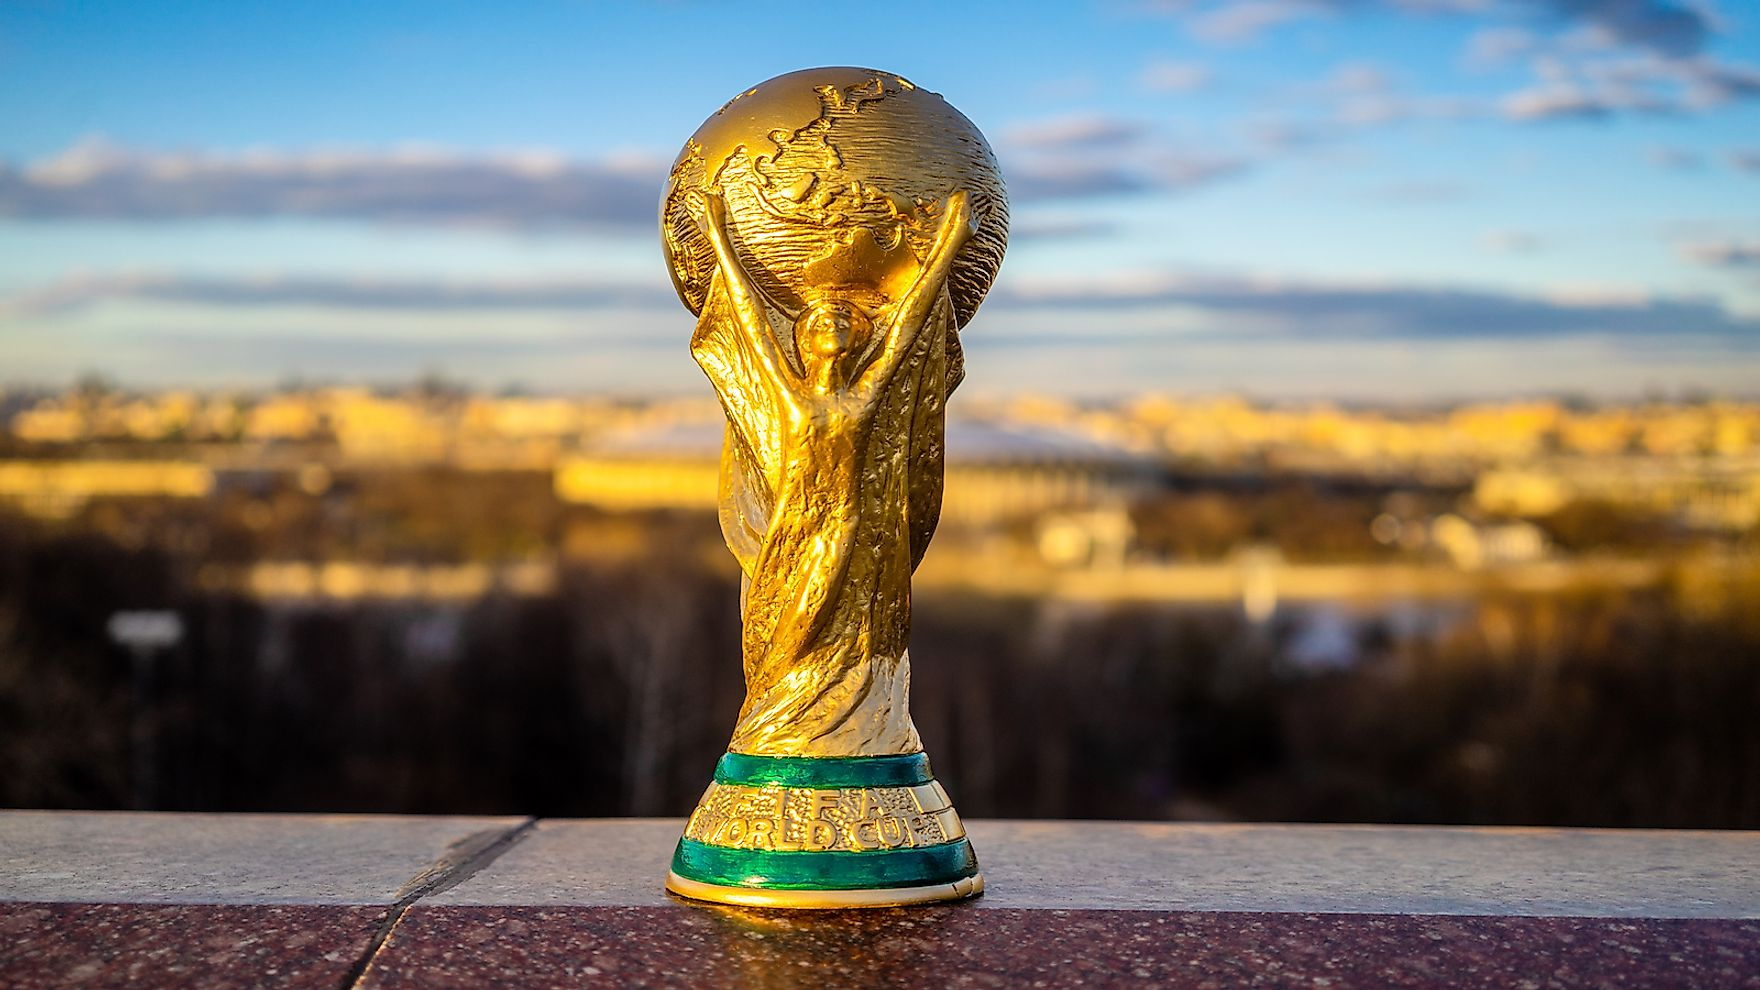 Trophy of the FIFA World Cup.